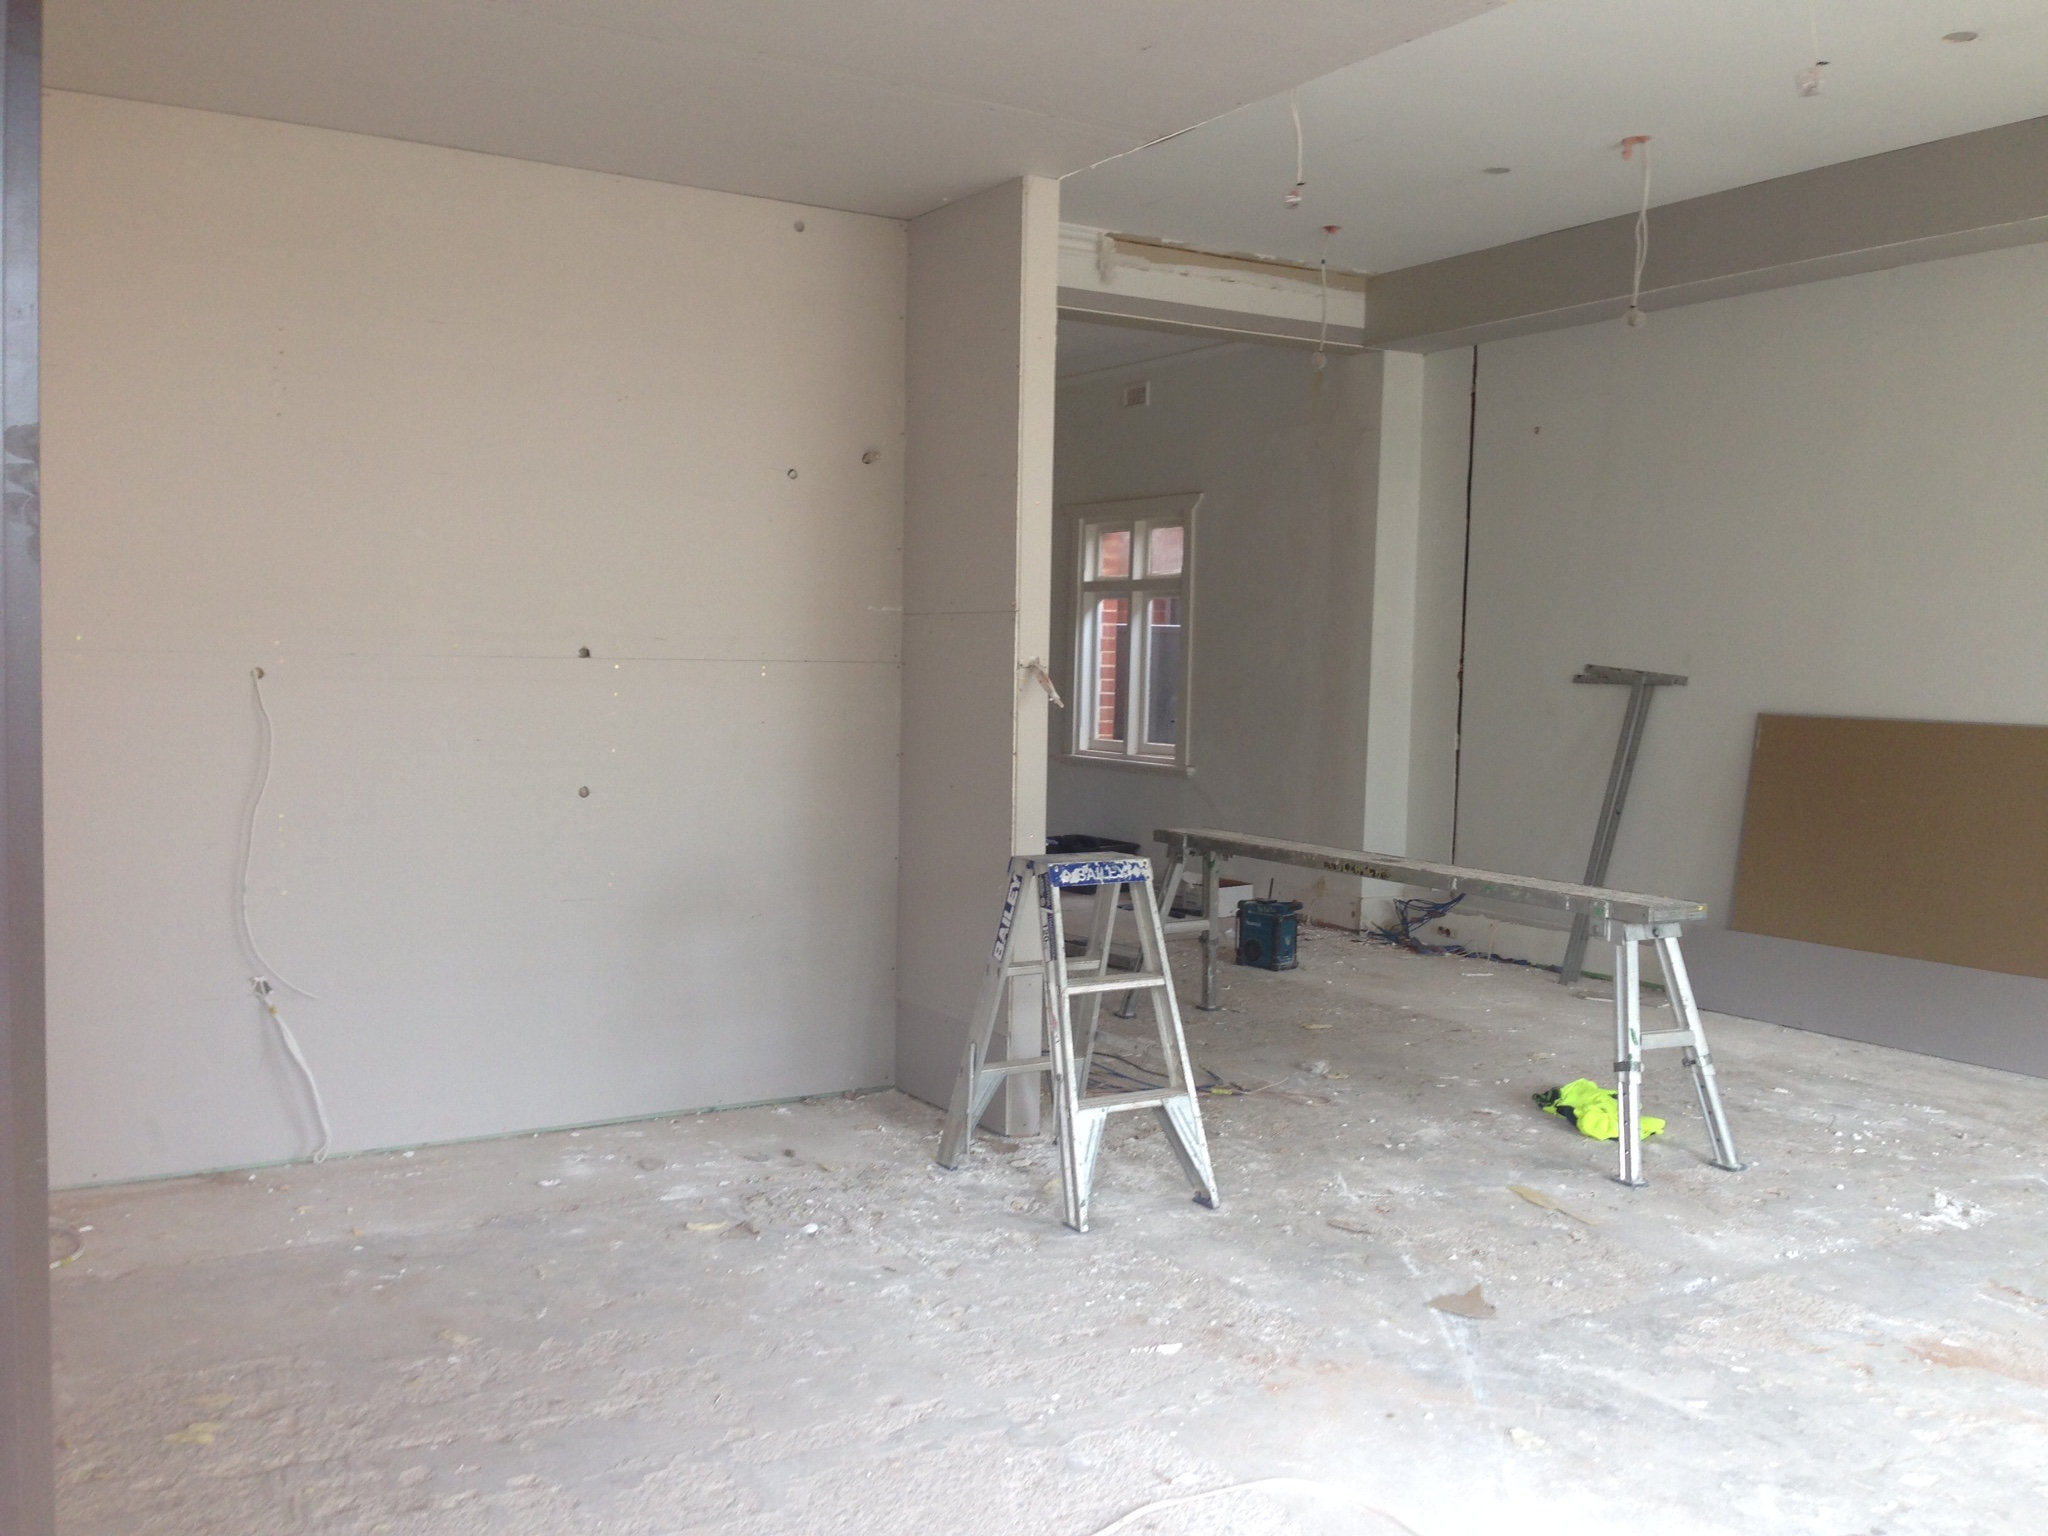 Plasterboard in the kitchen looking towards living area.